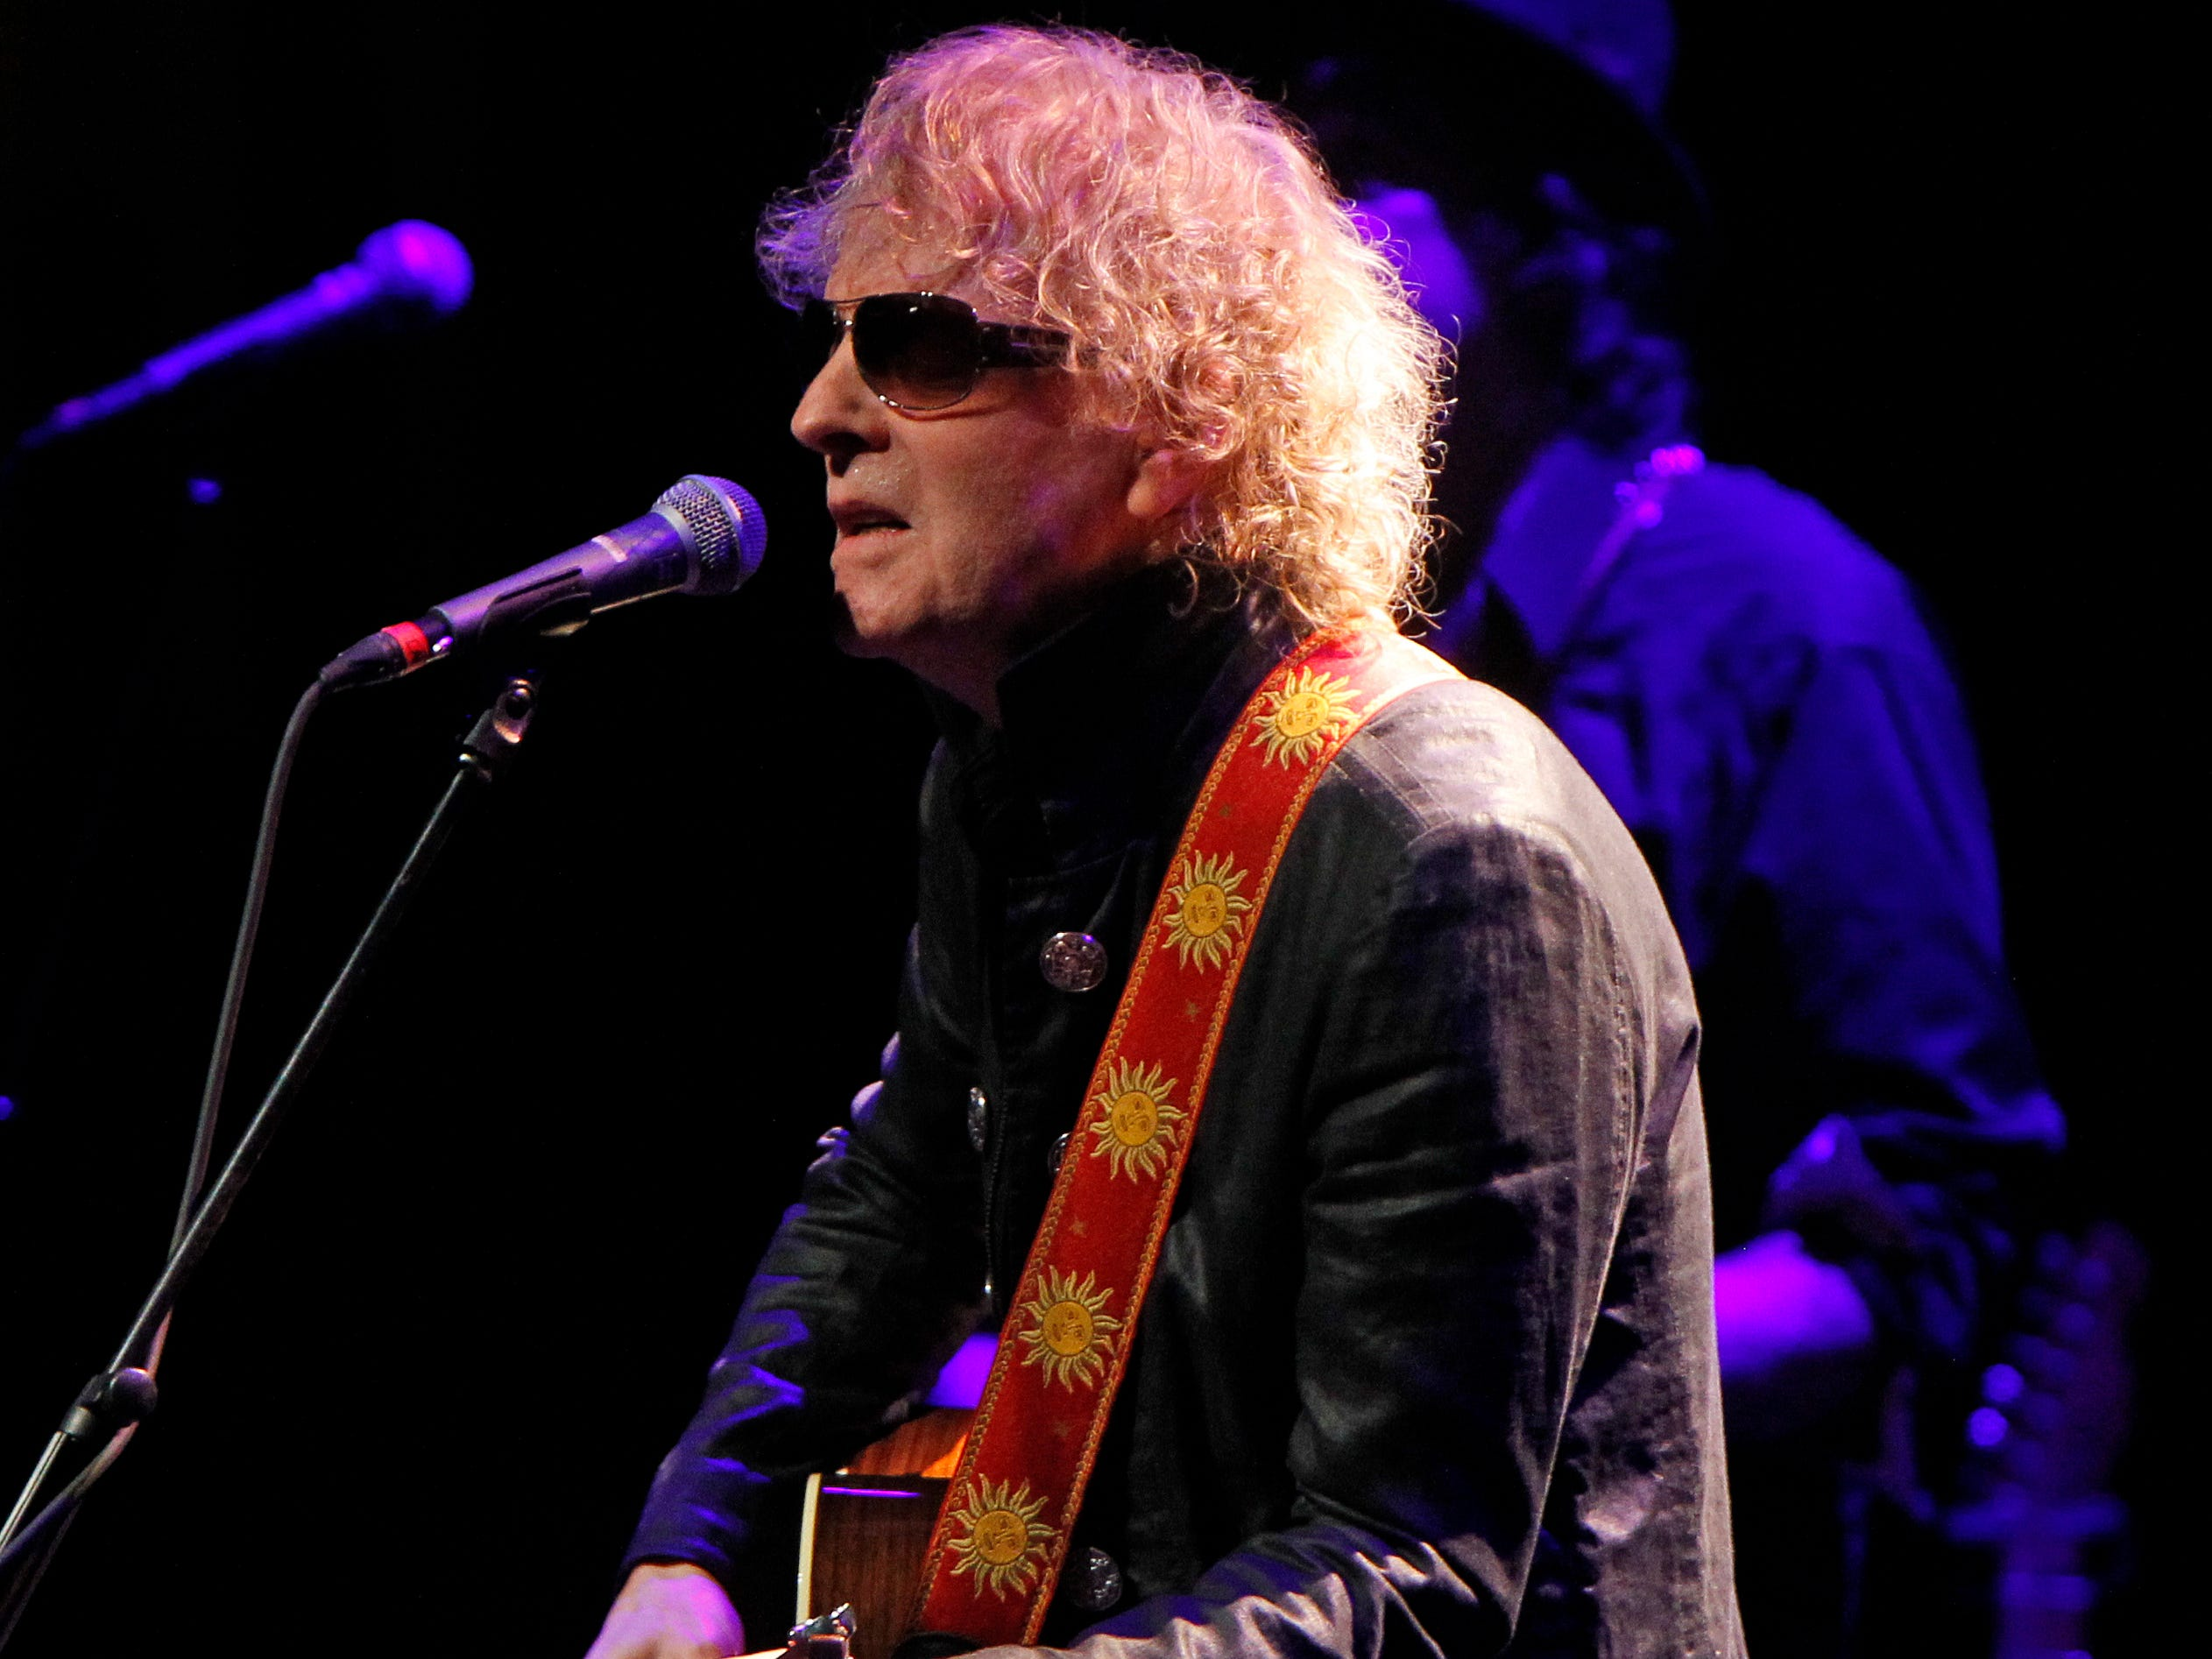 Ian Hunter, from the Mott The Hoople, perform at the Miller High Life Theatre in Milwaukee.